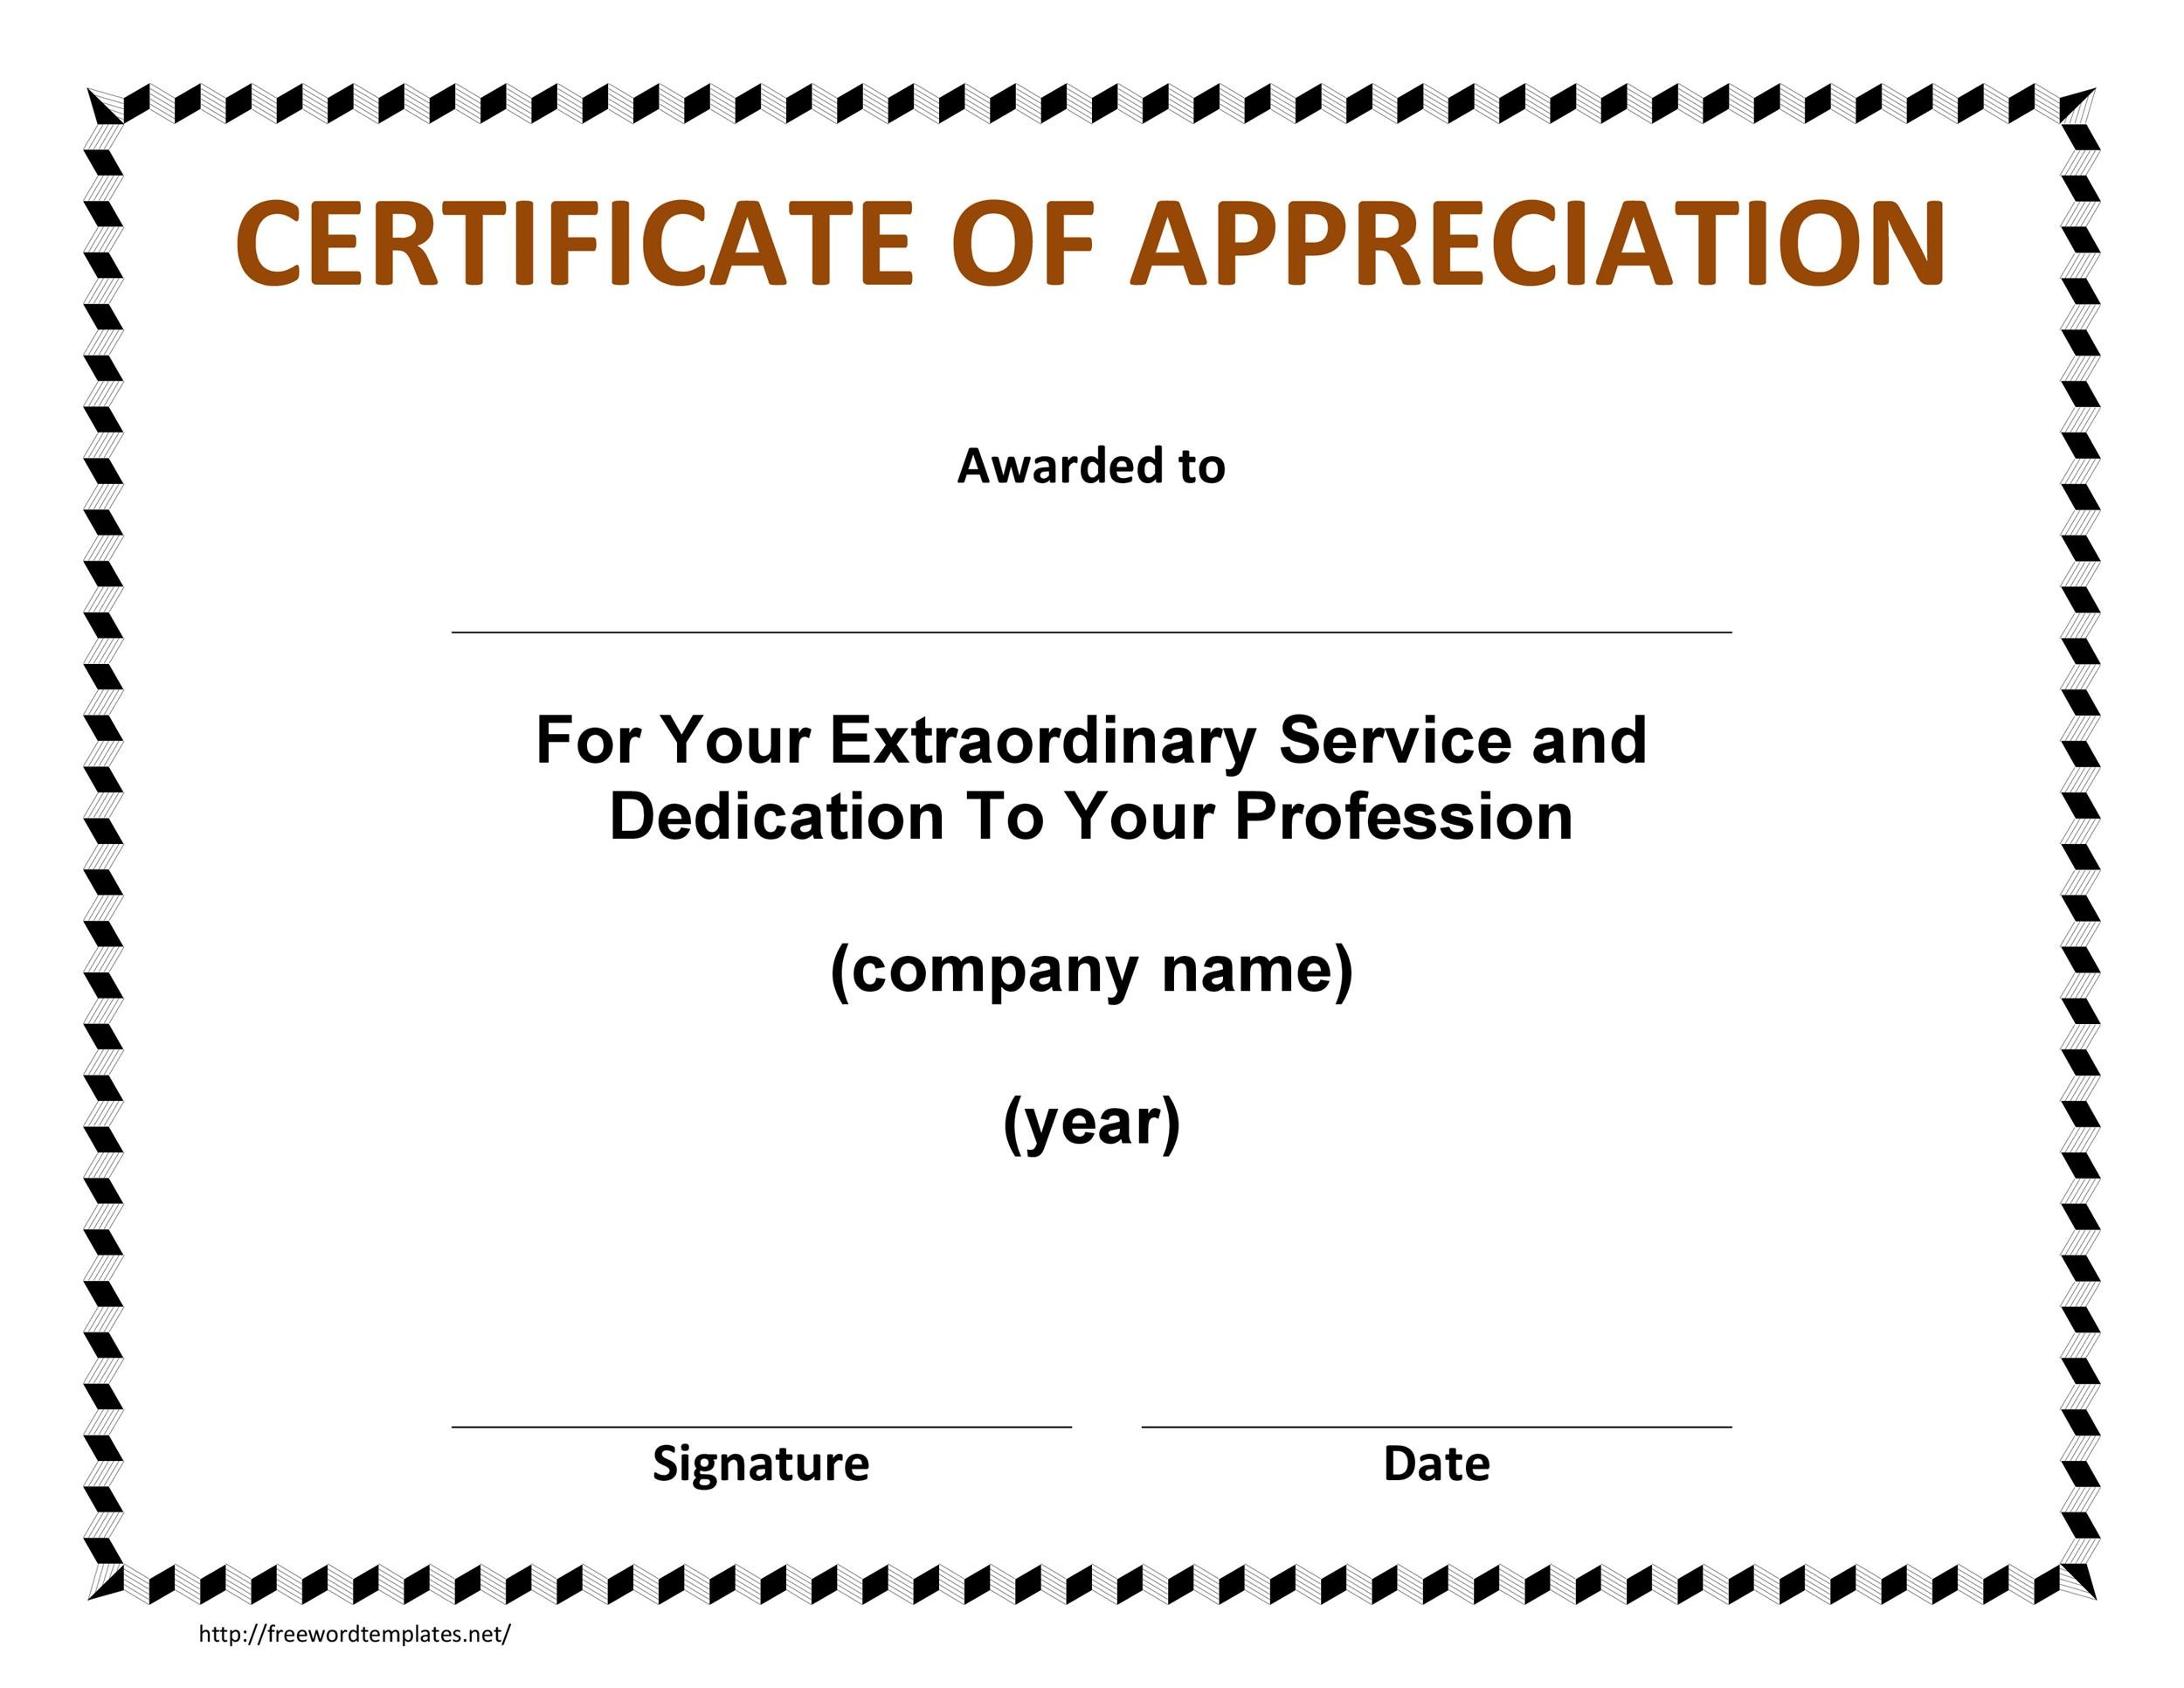 30 free certificate of appreciation templates and letters free certificate of appreciation 04 spiritdancerdesigns Image collections